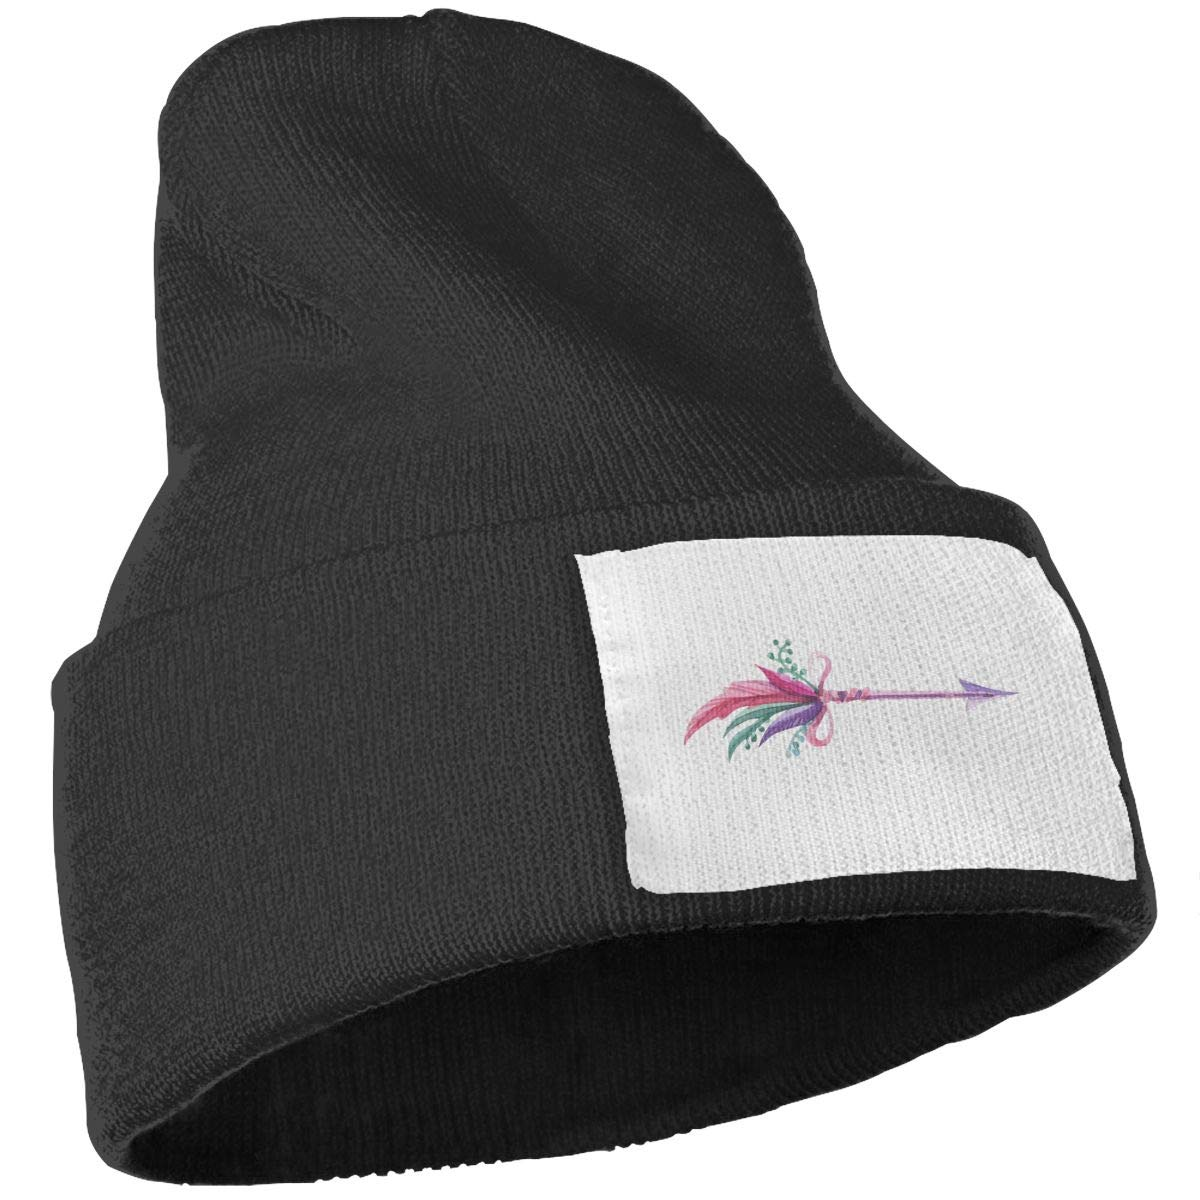 Feathered Arrow Unisex Fashion Knitted Hat Luxury Hip-Hop Cap